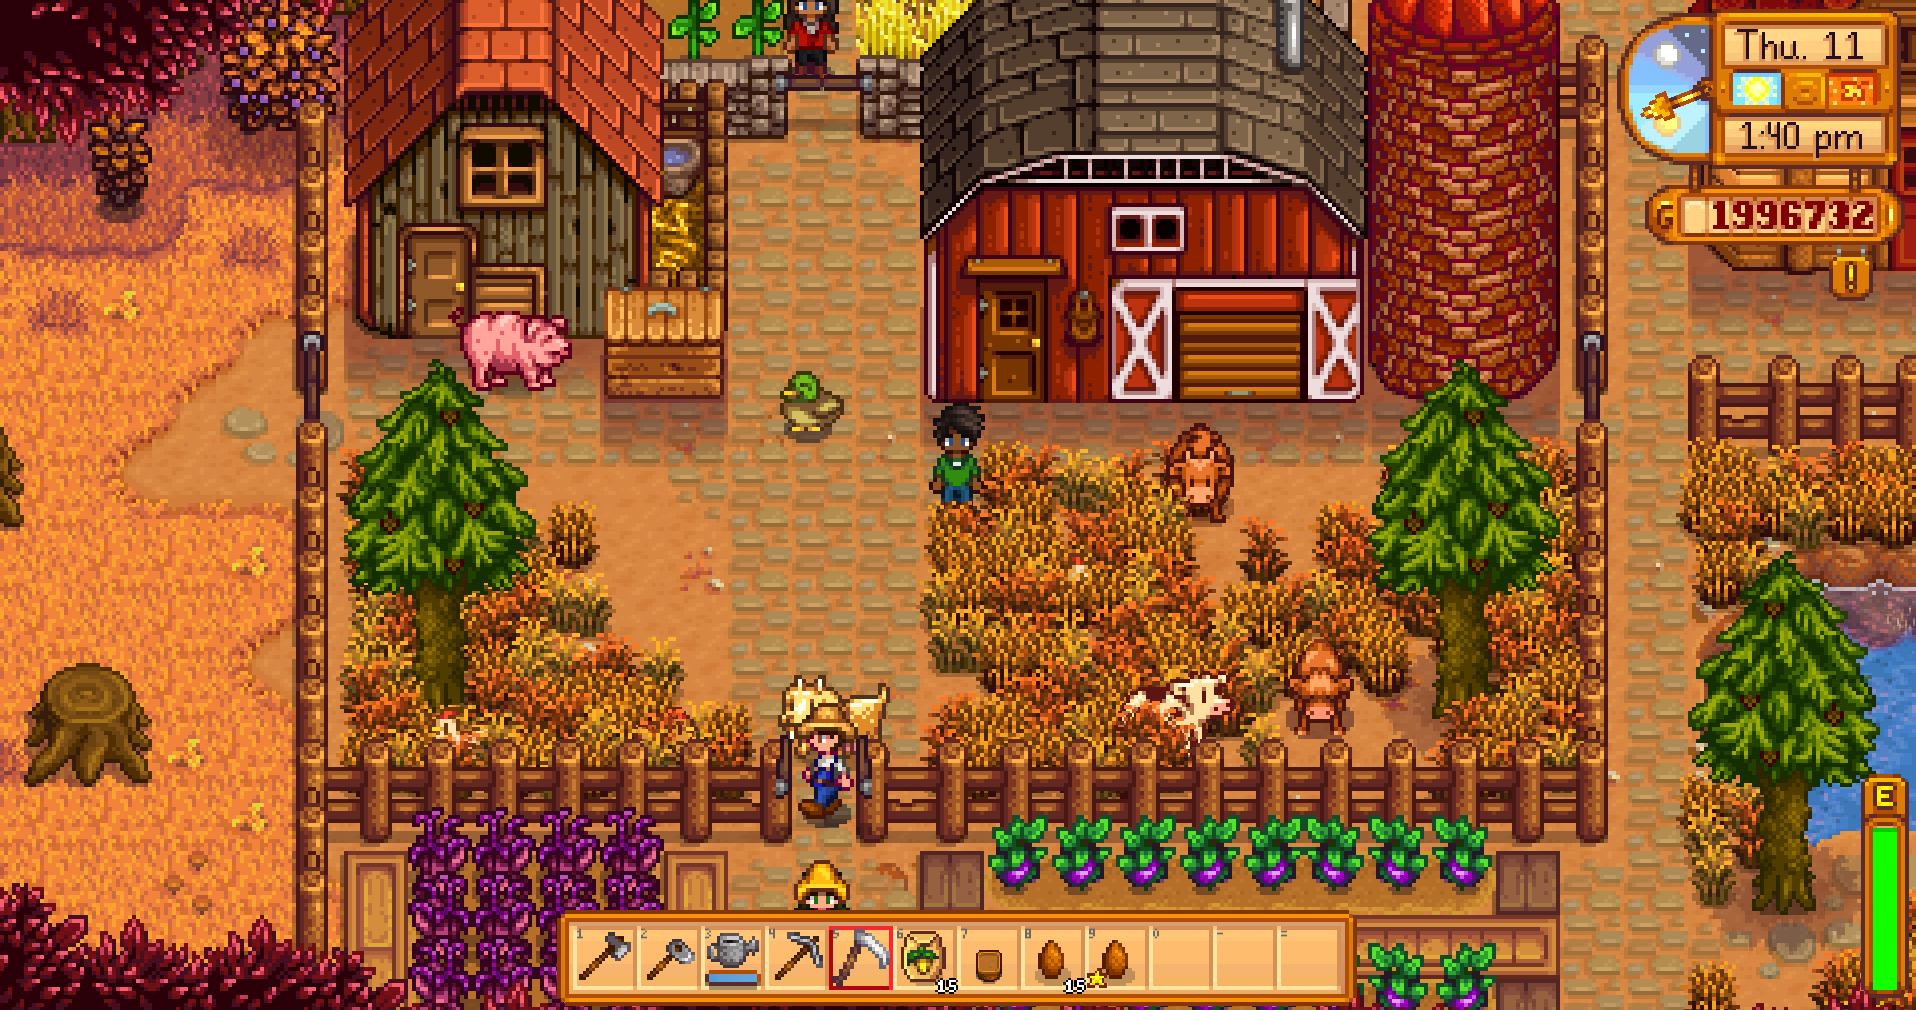 Stardew Valley on PS Vita is here! - Chucklefish